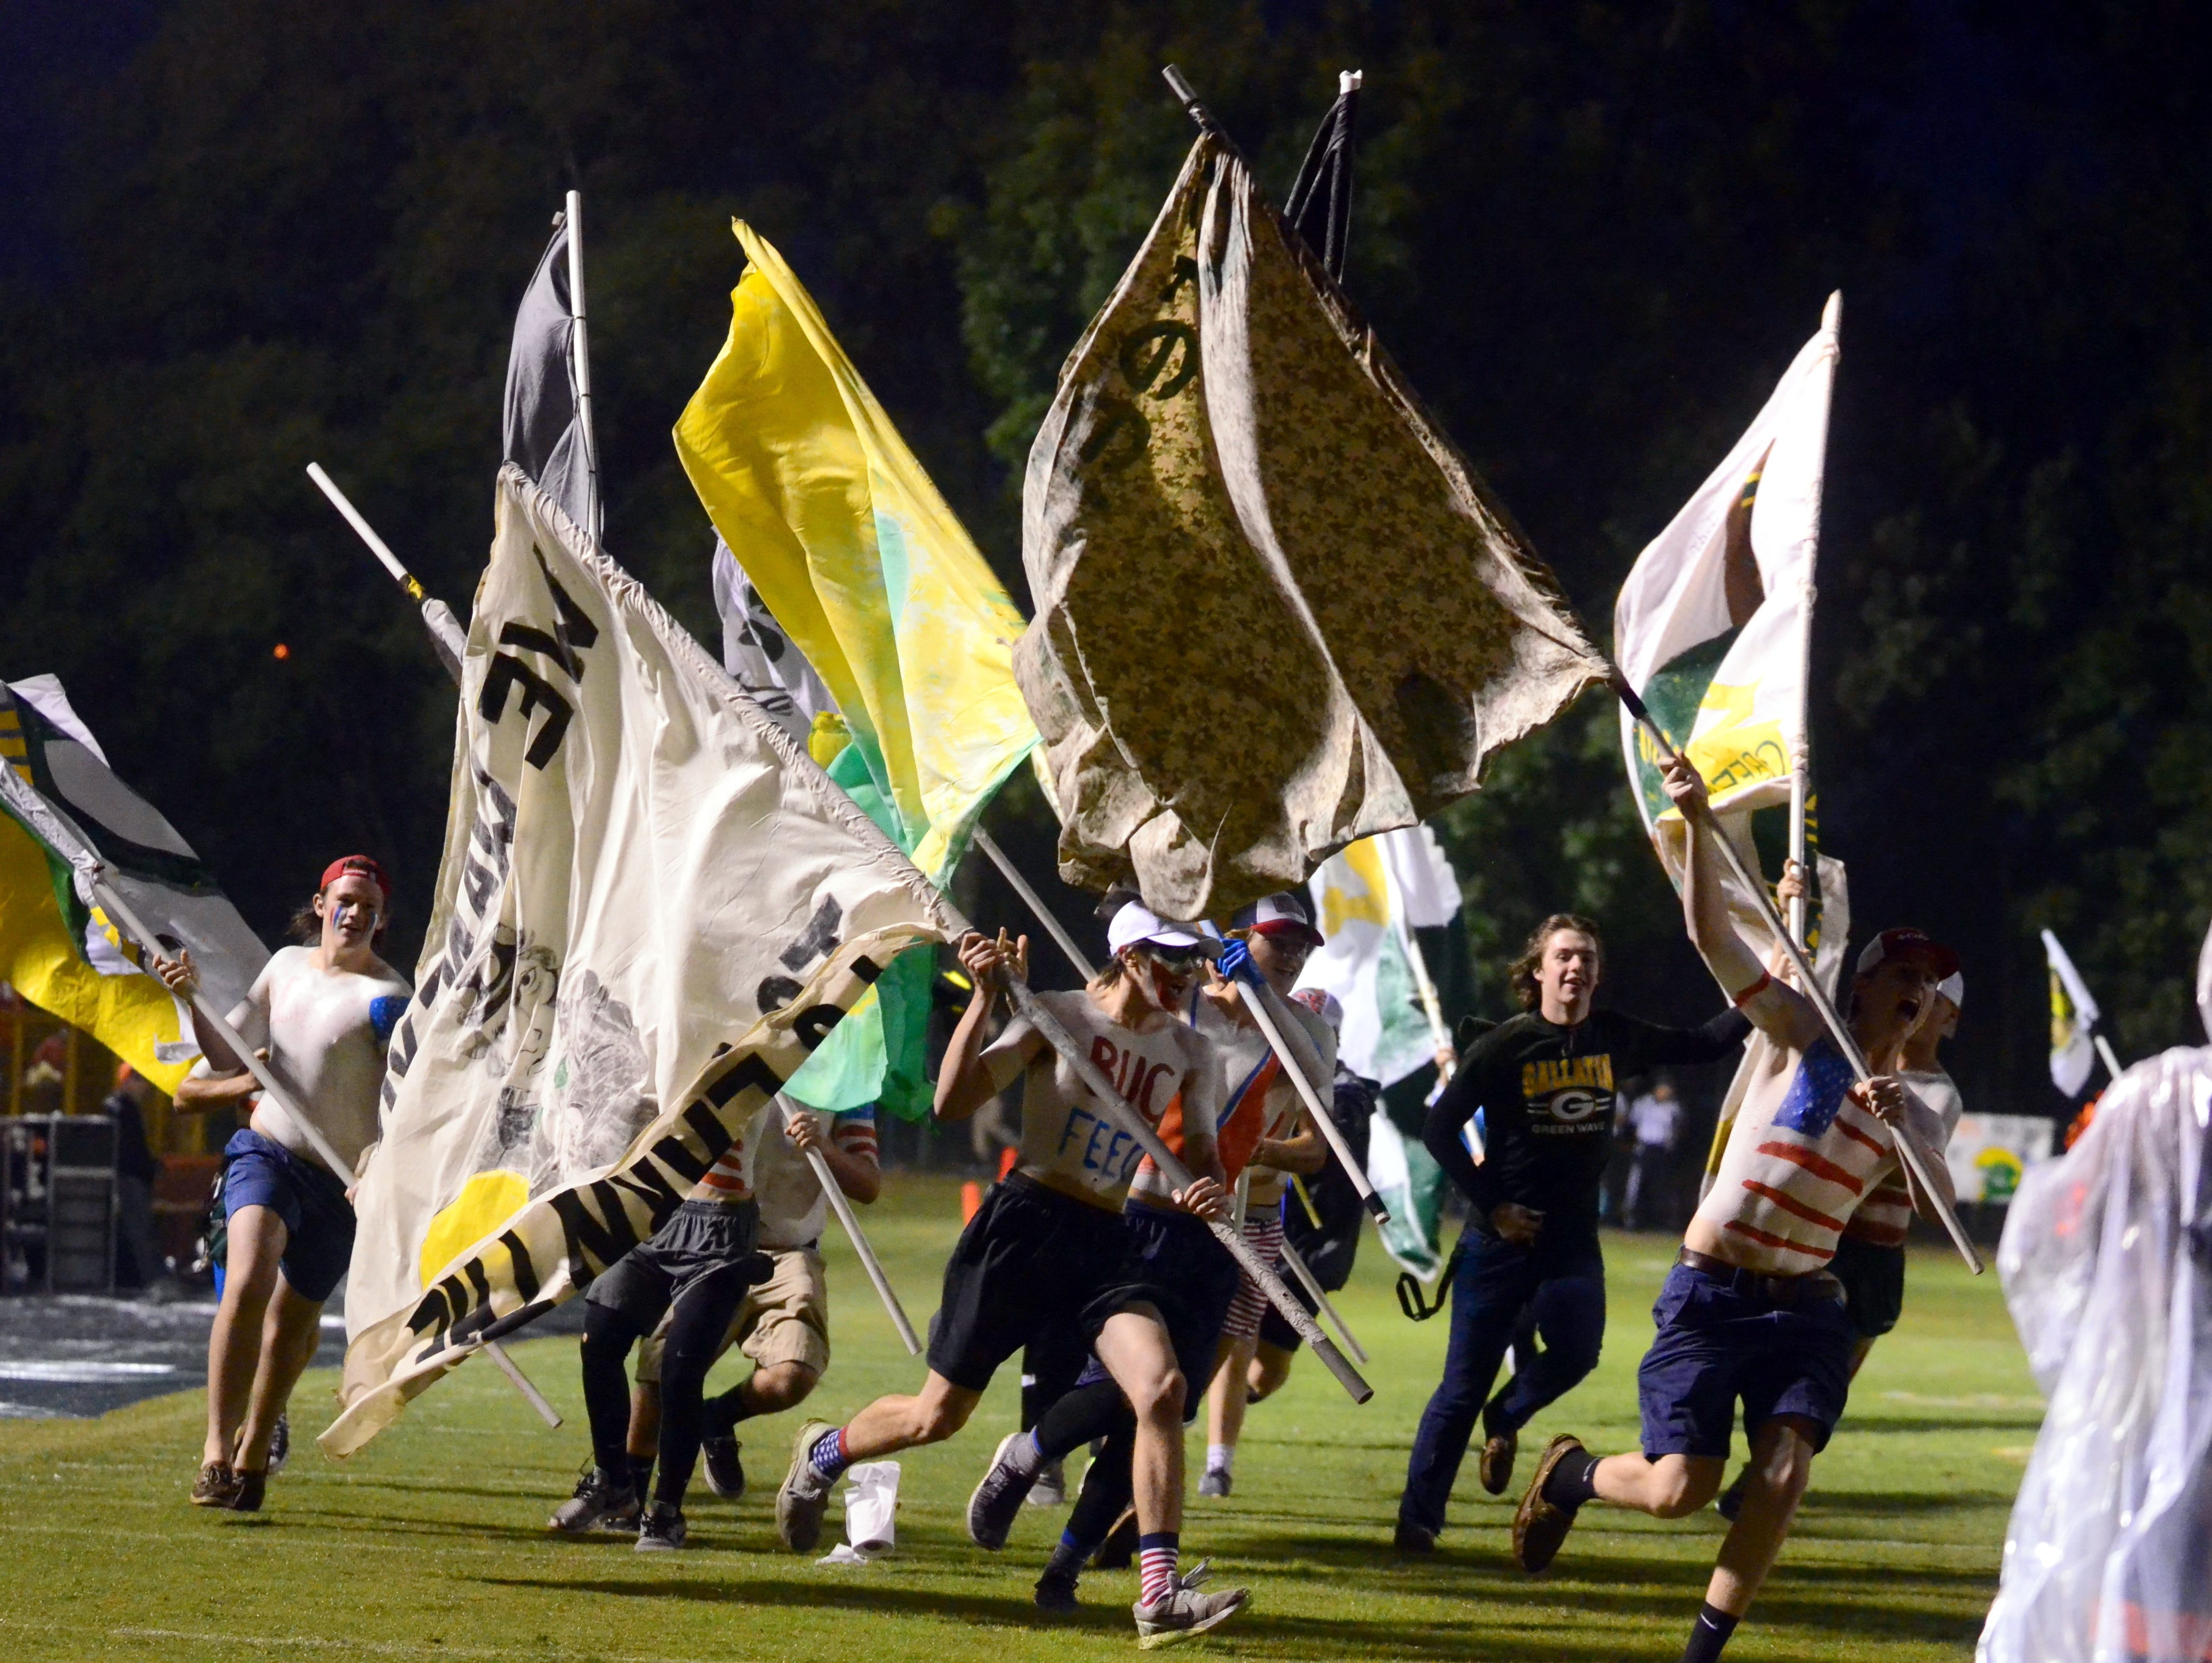 Gallatin High students carry flags on the field prior to FridayÕs game against Beech on Friday, September 30, 2016.